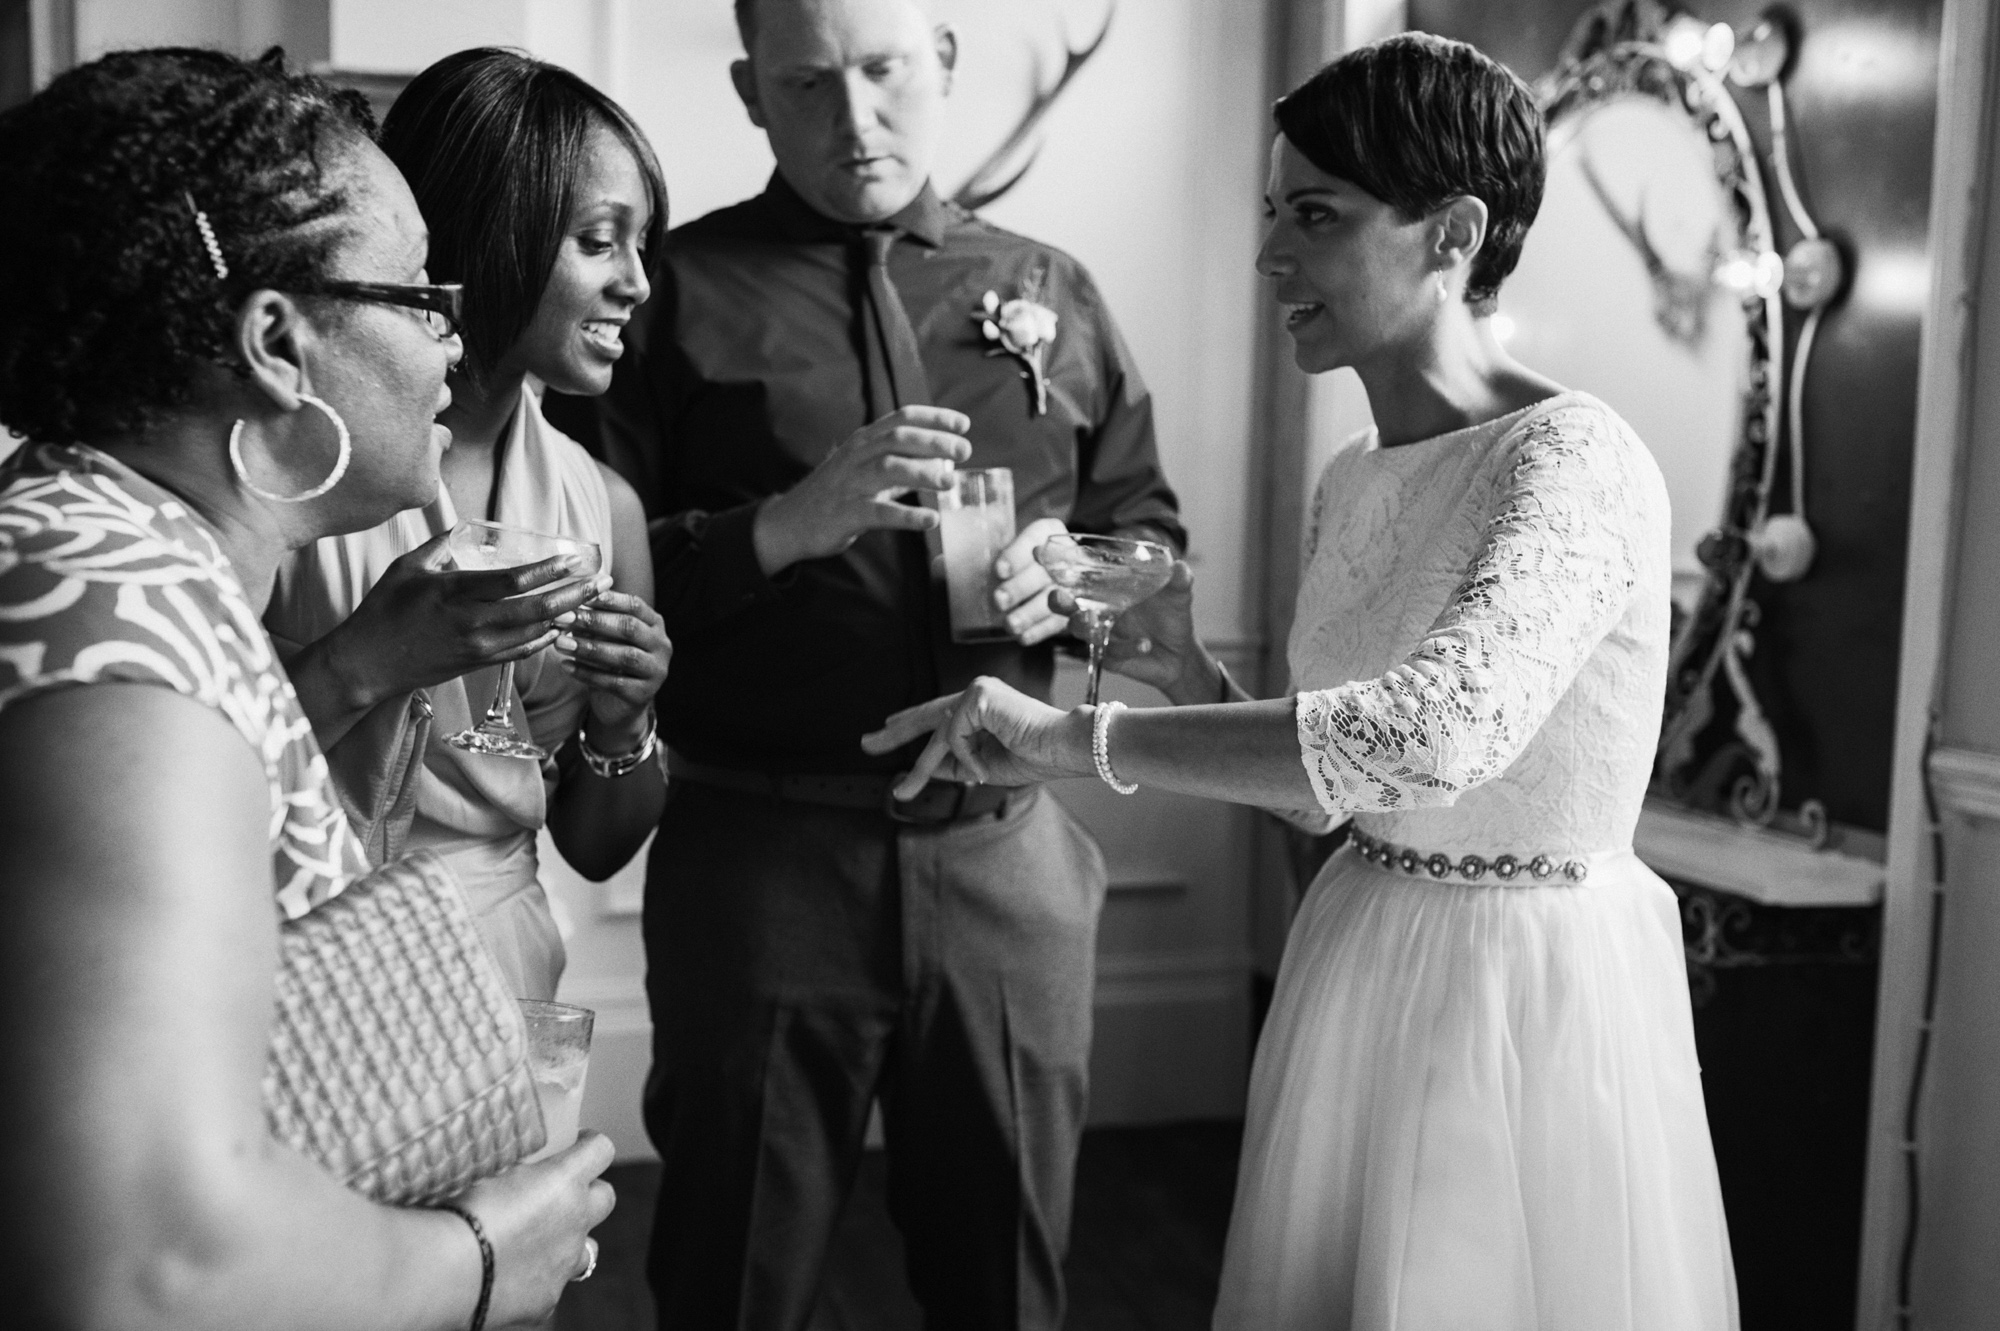 Bride chatting to wedding guests - gay wedding The Roost Dalston wedding - quirky casual London wedding photographer © Babb Photo